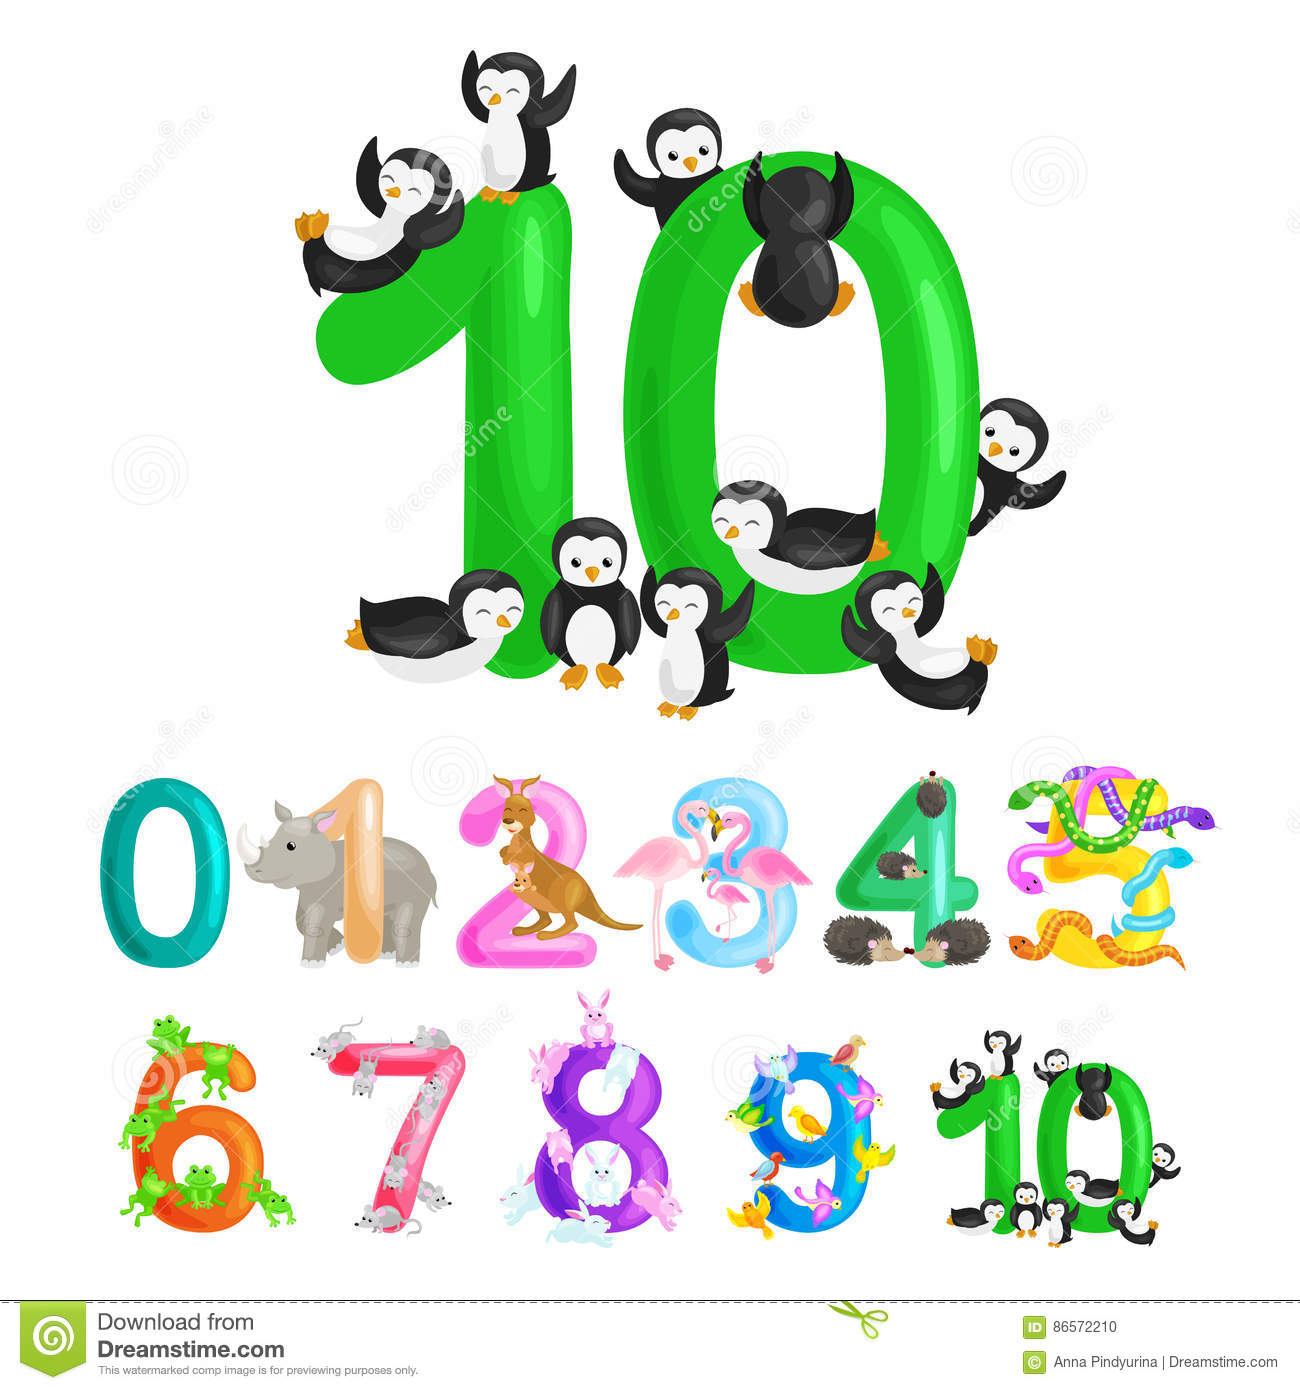 Ordinal Number 10 For Teaching Children Counting Ten Penguins With ...